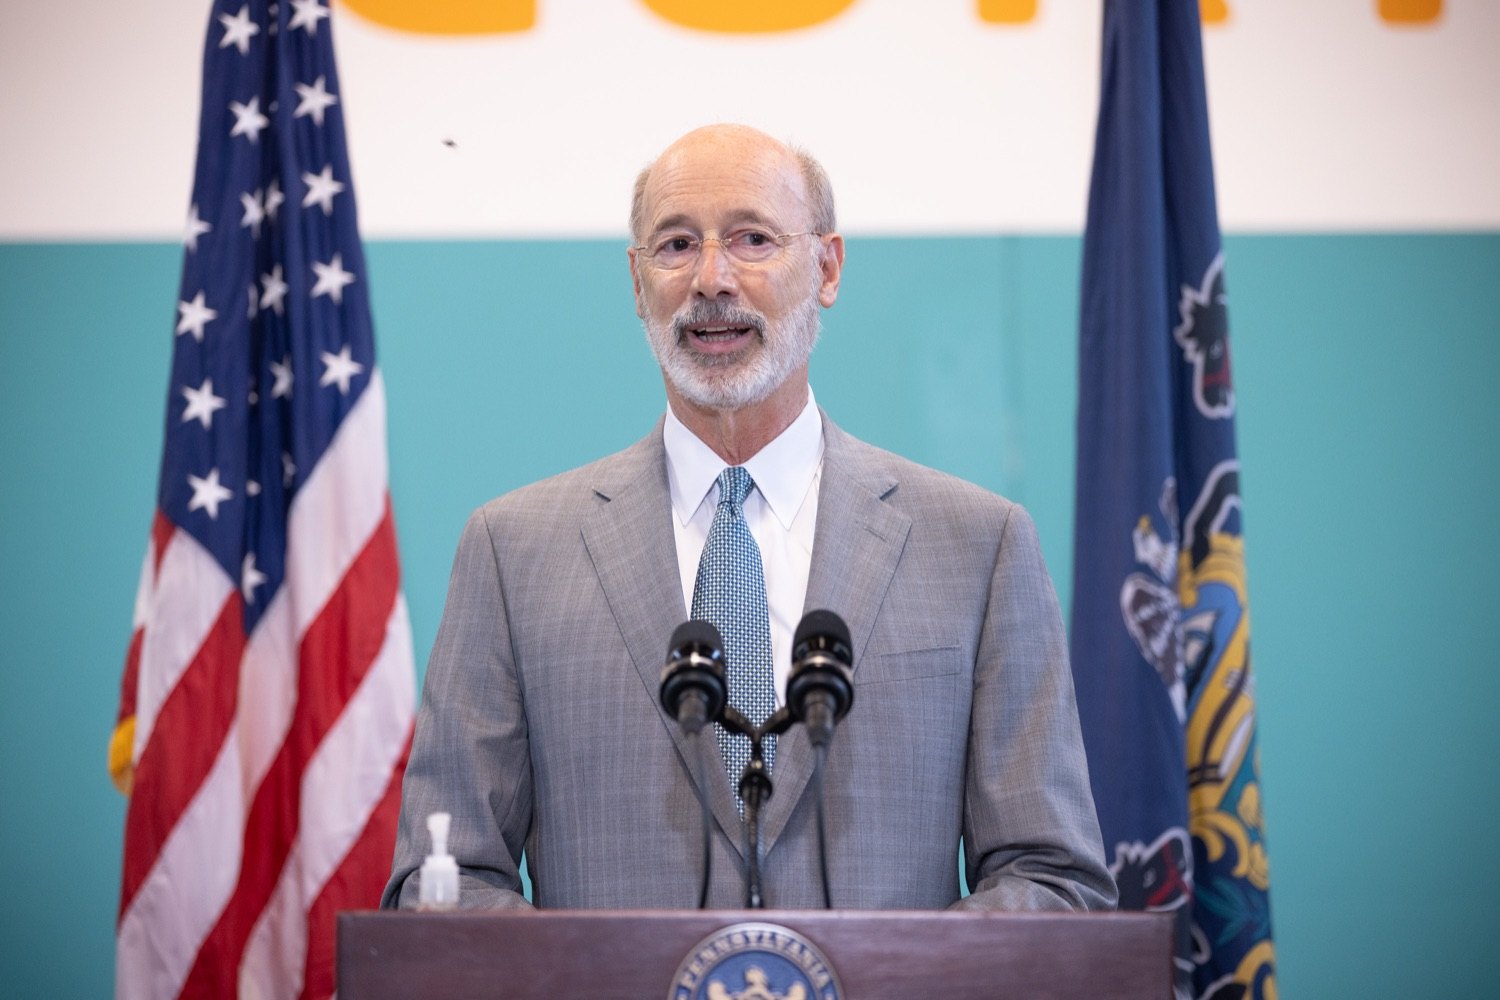 """<a href=""""https://filesource.wostreaming.net/commonwealthofpa/photo/18815_gov_voterRights_dz_013.jpg"""" target=""""_blank"""">⇣Download Photo<br></a>Pennsylvania Governor Tom Wolf speaking with the press.  With some politicians spreading lies about our elections to divide us, Governor Tom Wolf today vowed to protect the freedom to vote and oppose legislation that would create barriers to voting and silence the voices of some Pennsylvanians. These are the same lies that led directly to the appalling assault on our U.S. Capitol and our democracy on January 6, and now, just a few short months later, the same people who fomented, encouraged, and joined that mob are again emerging to undermine the fabric of our nation.   Harrisburg, PA  June 9, 2021"""